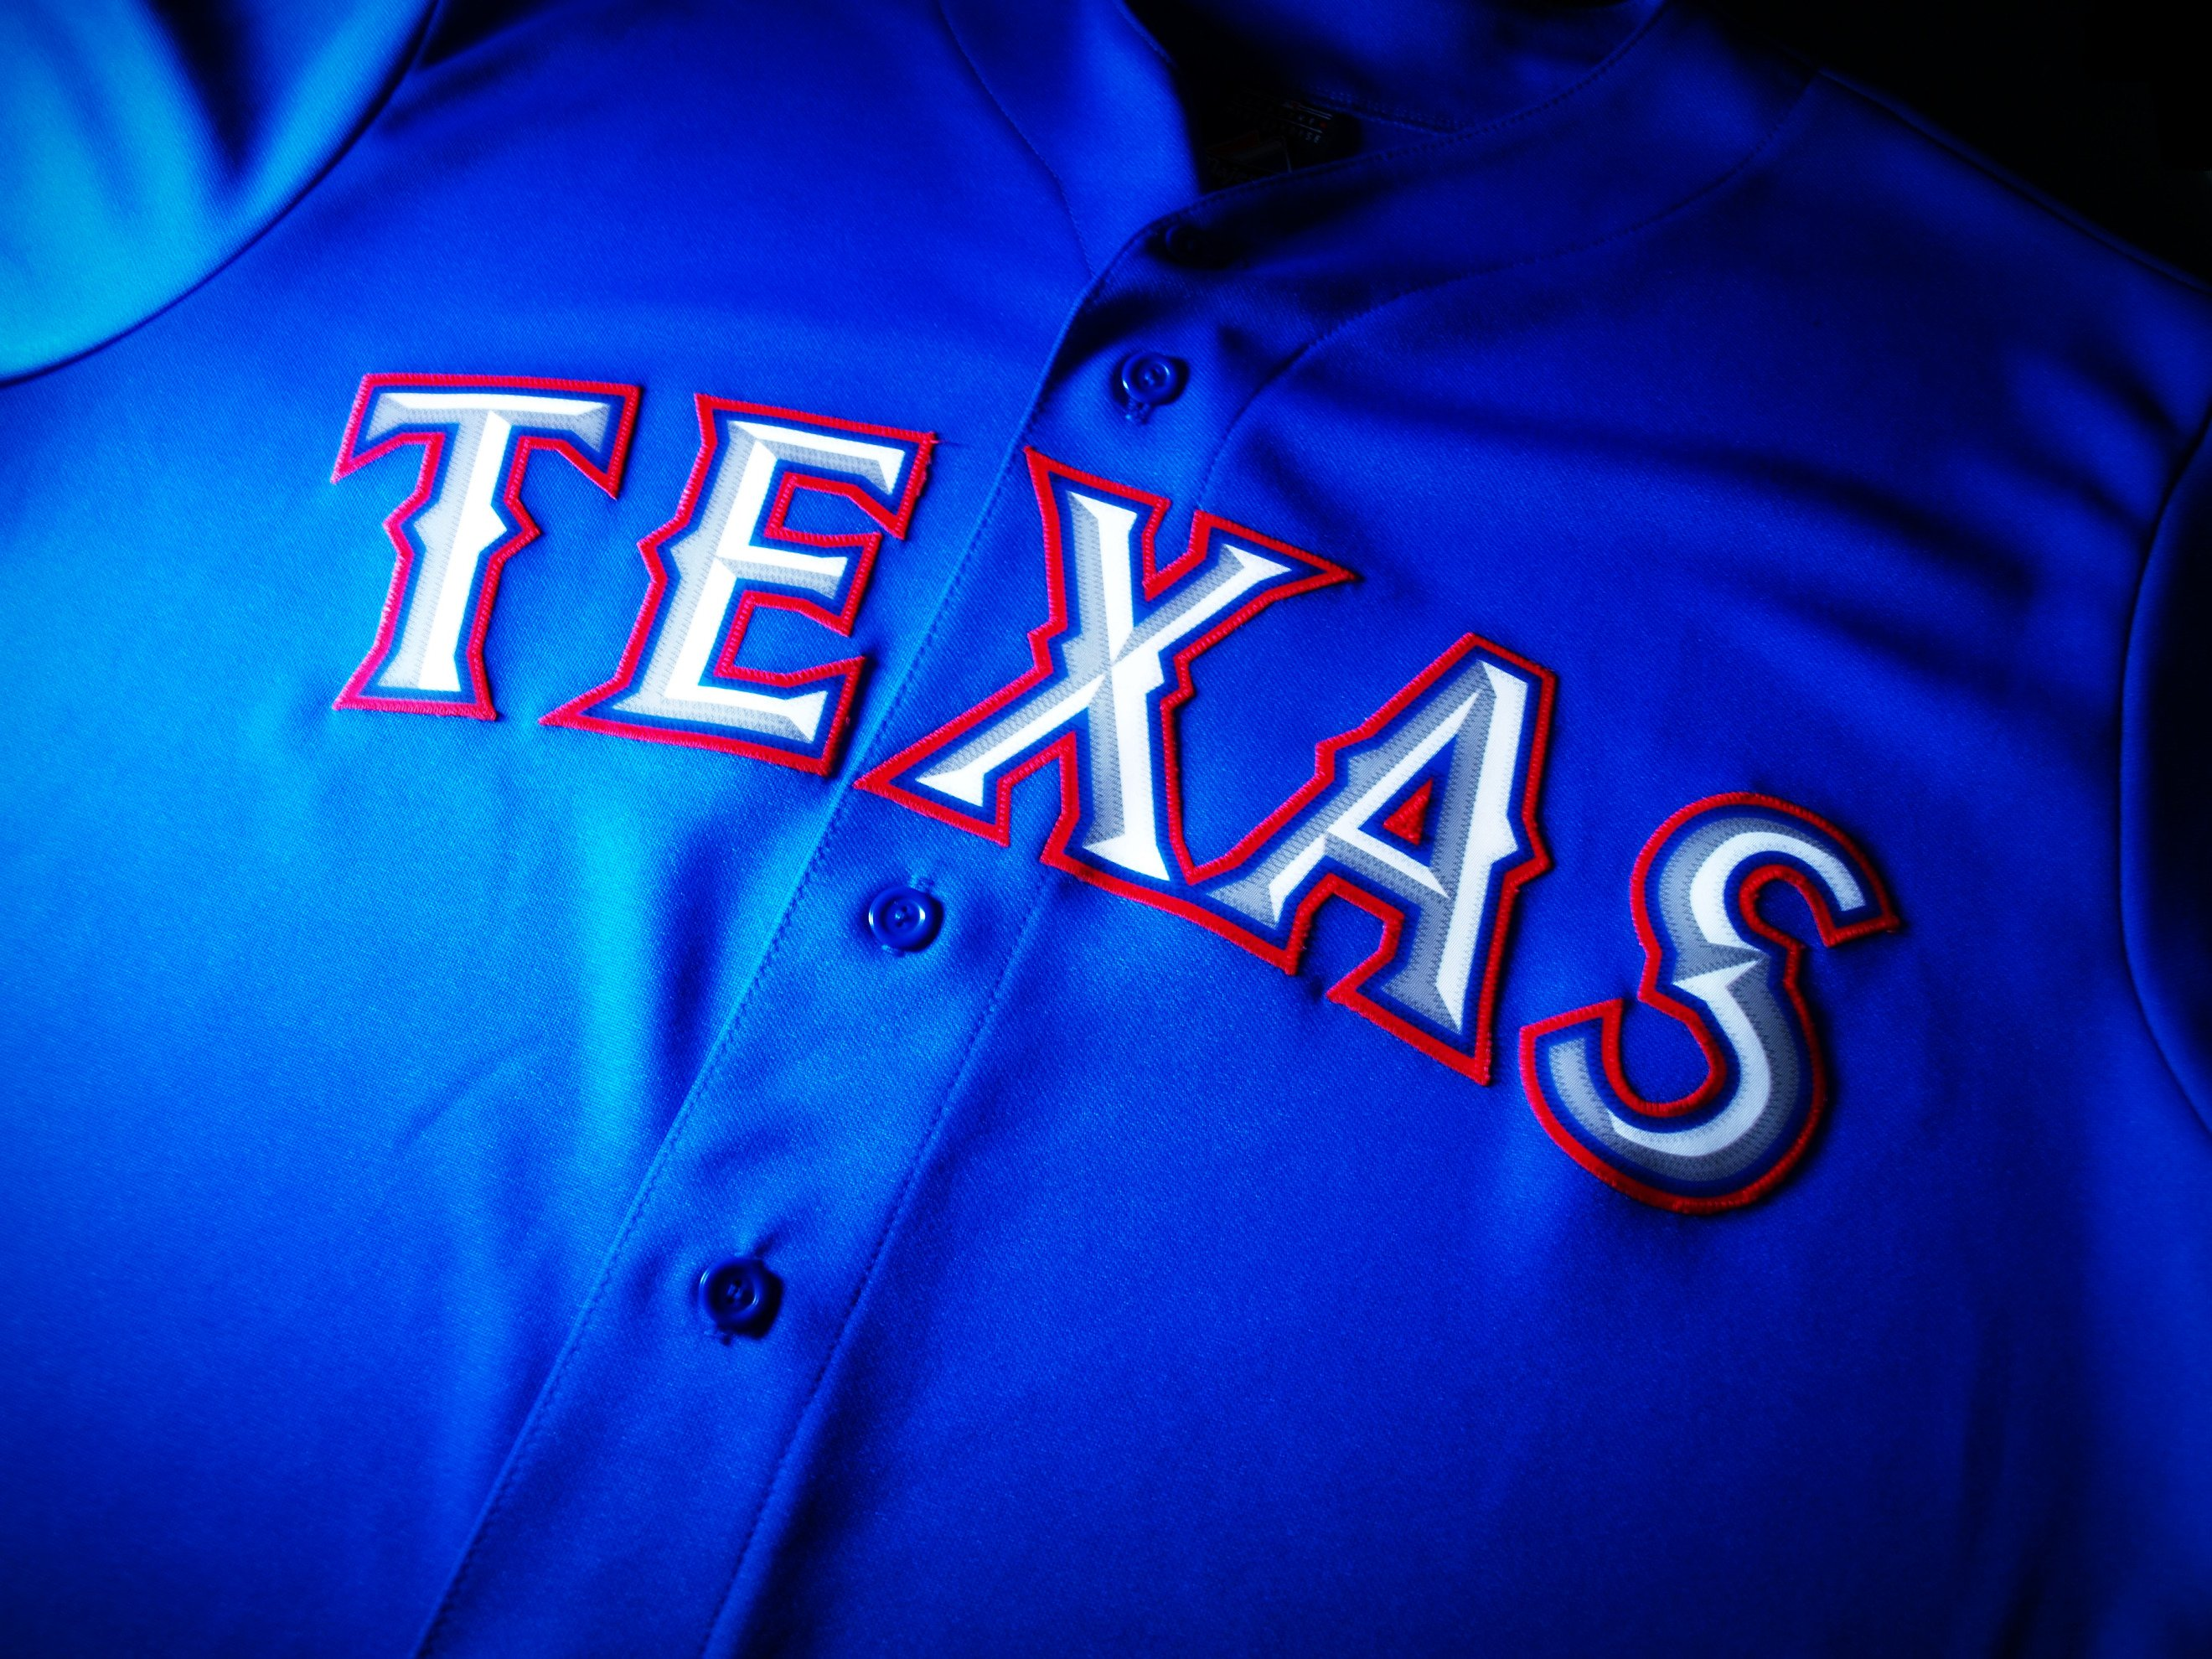 Texas Rangers Desktop Wallpaper Collection 2640x1980